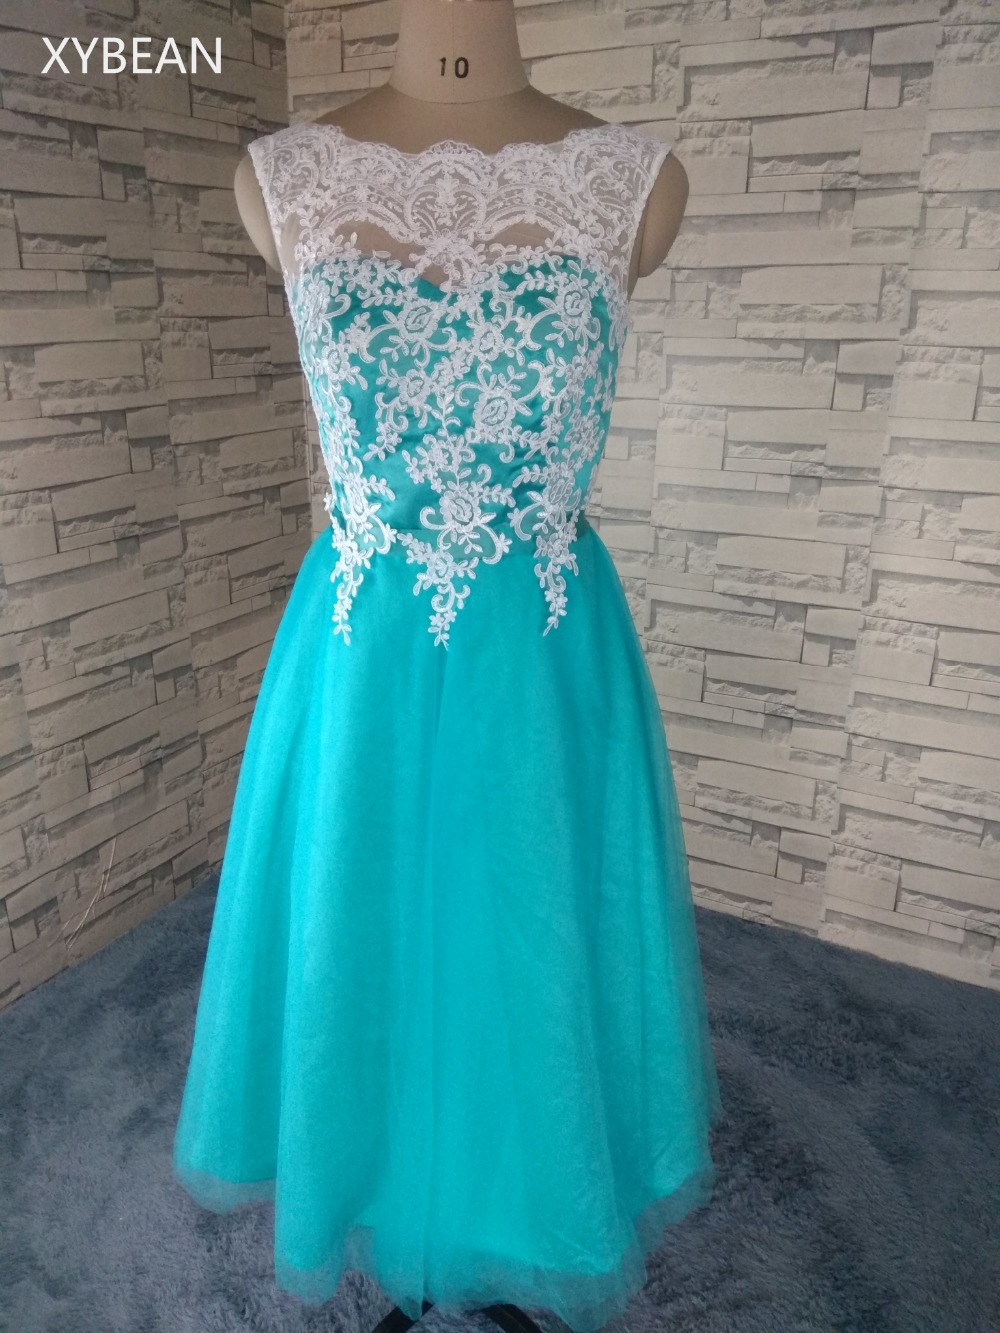 Free Shipping ! 2018 New Arrival Appliques Lace Tea Length Prom ...